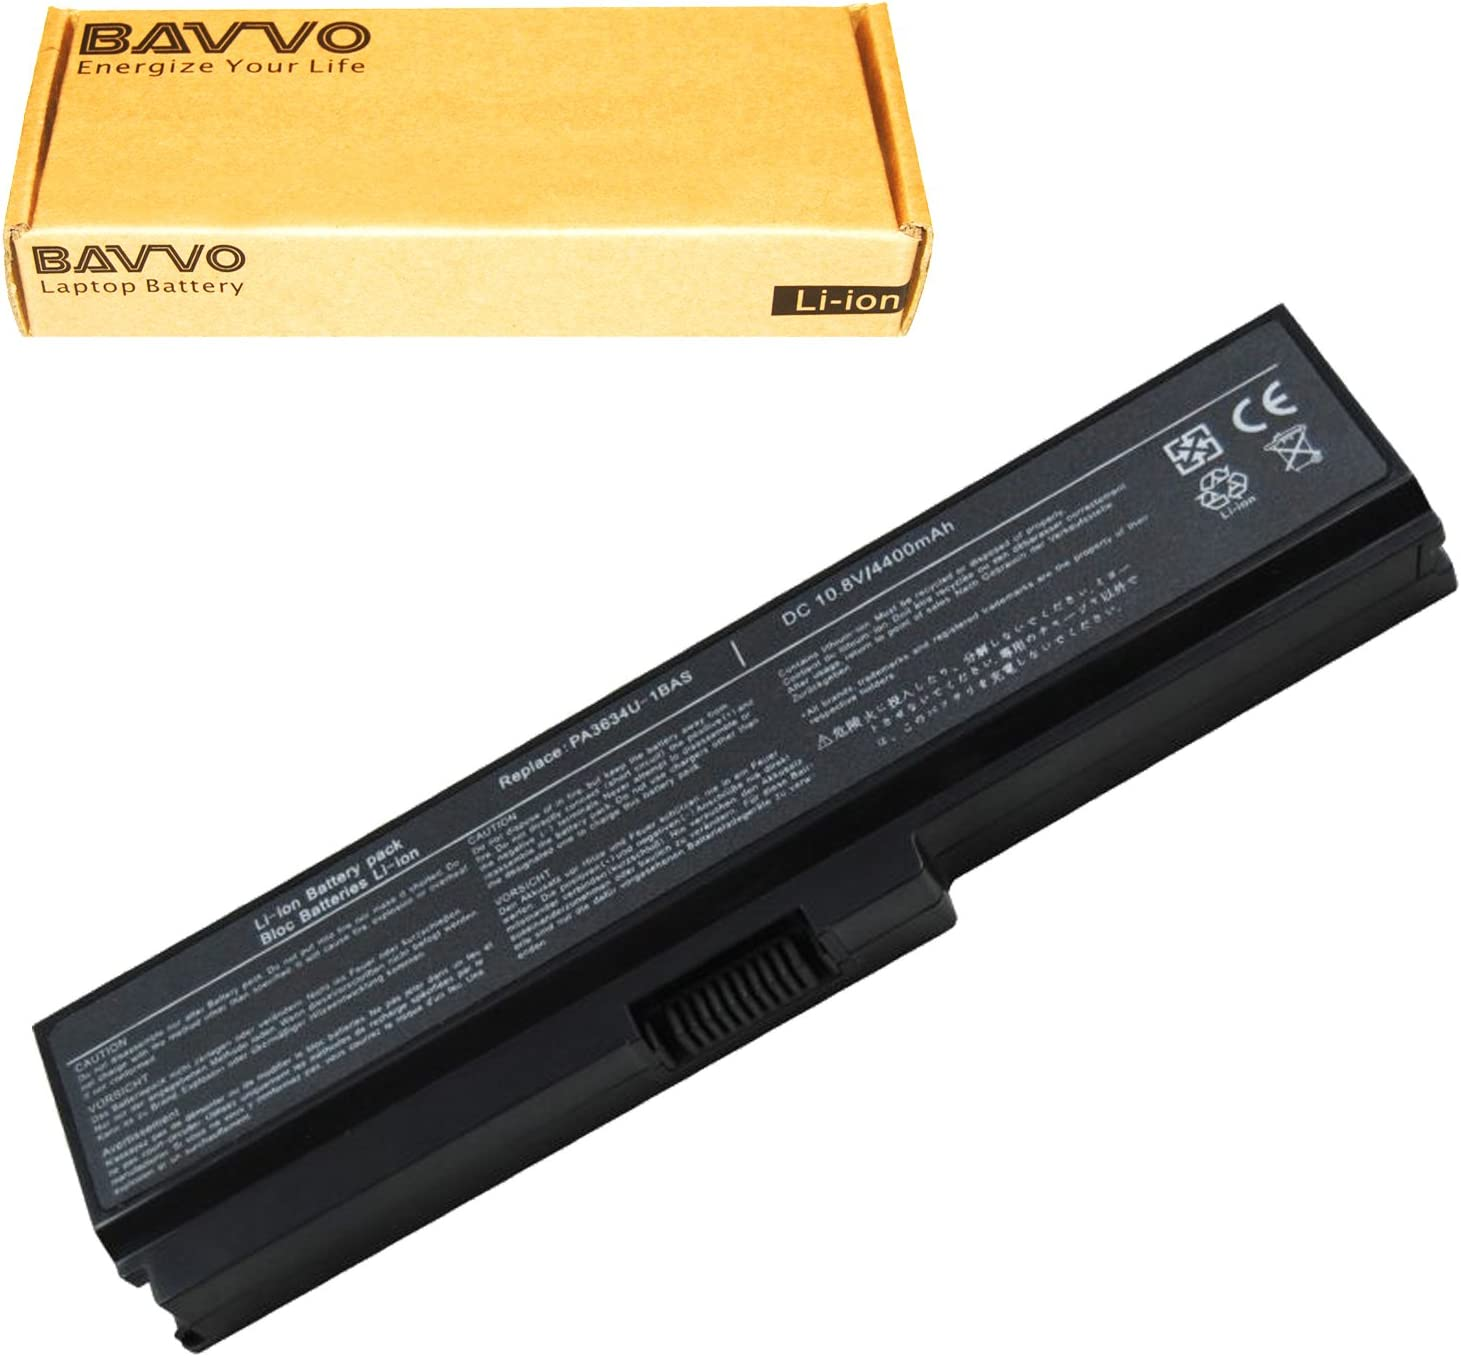 Bavvo Battery Compatible with Toshiba Satellite P775-S7320